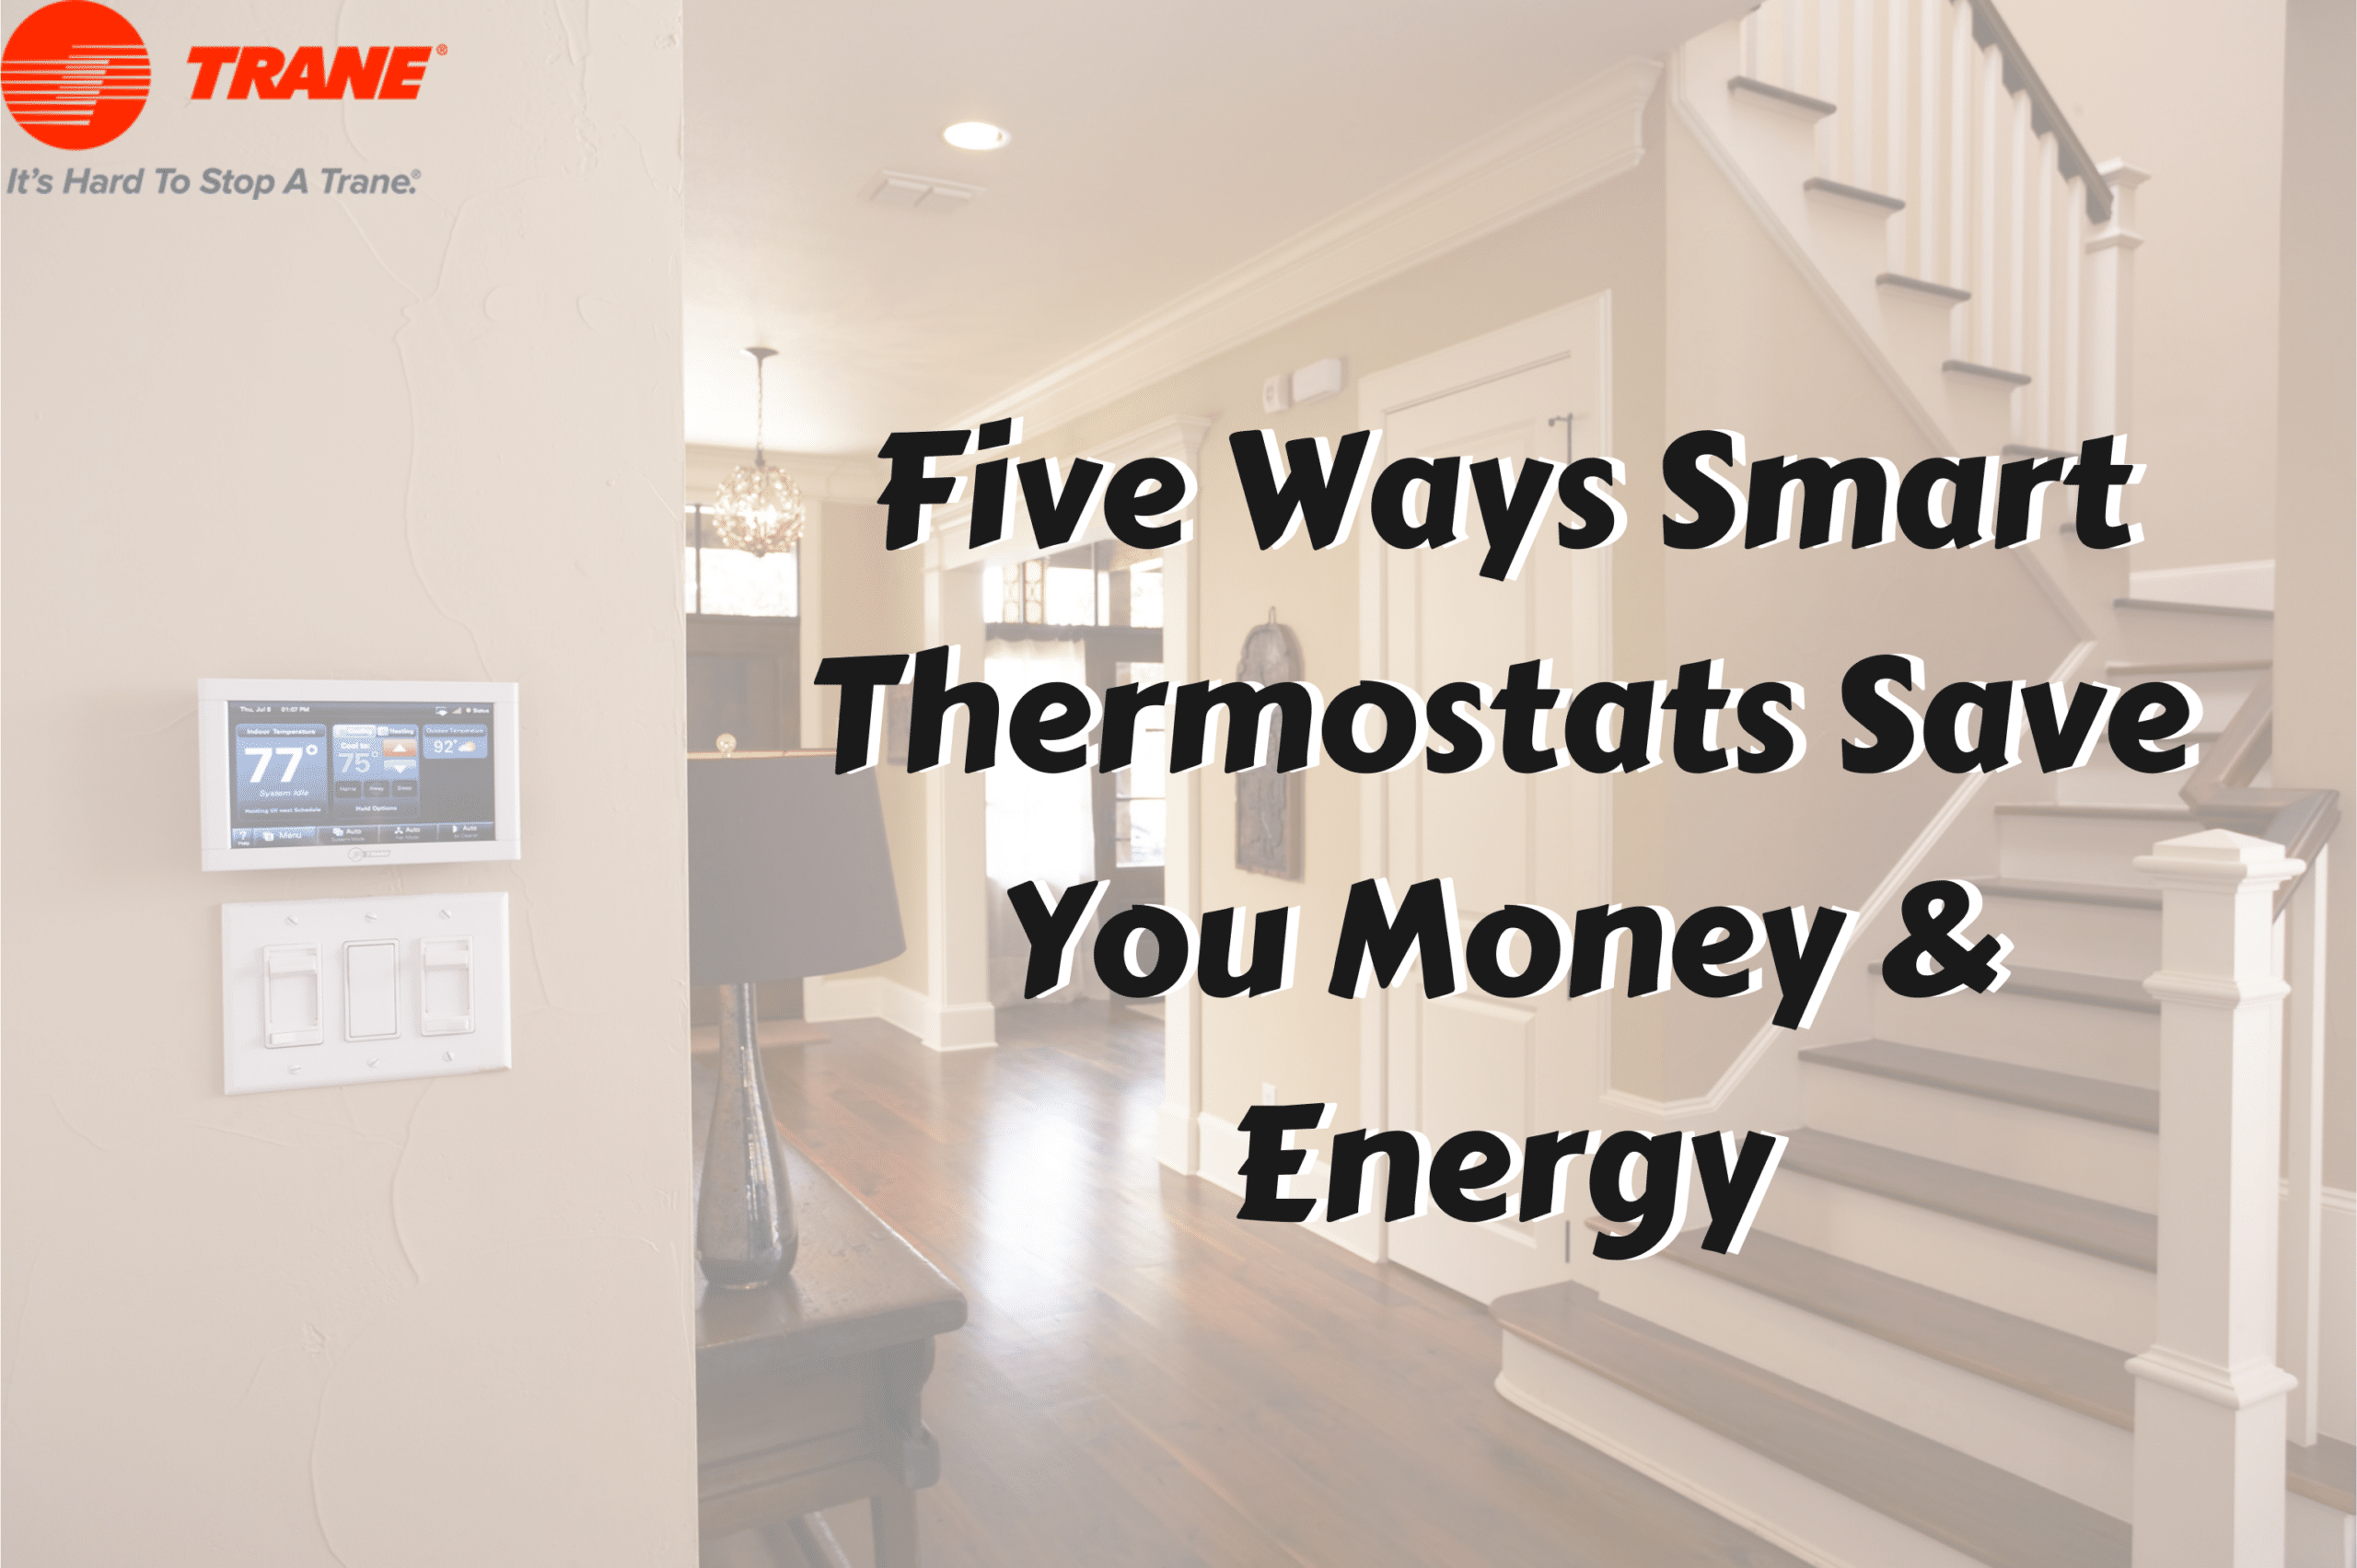 five ways smart thermostats save you money & energy